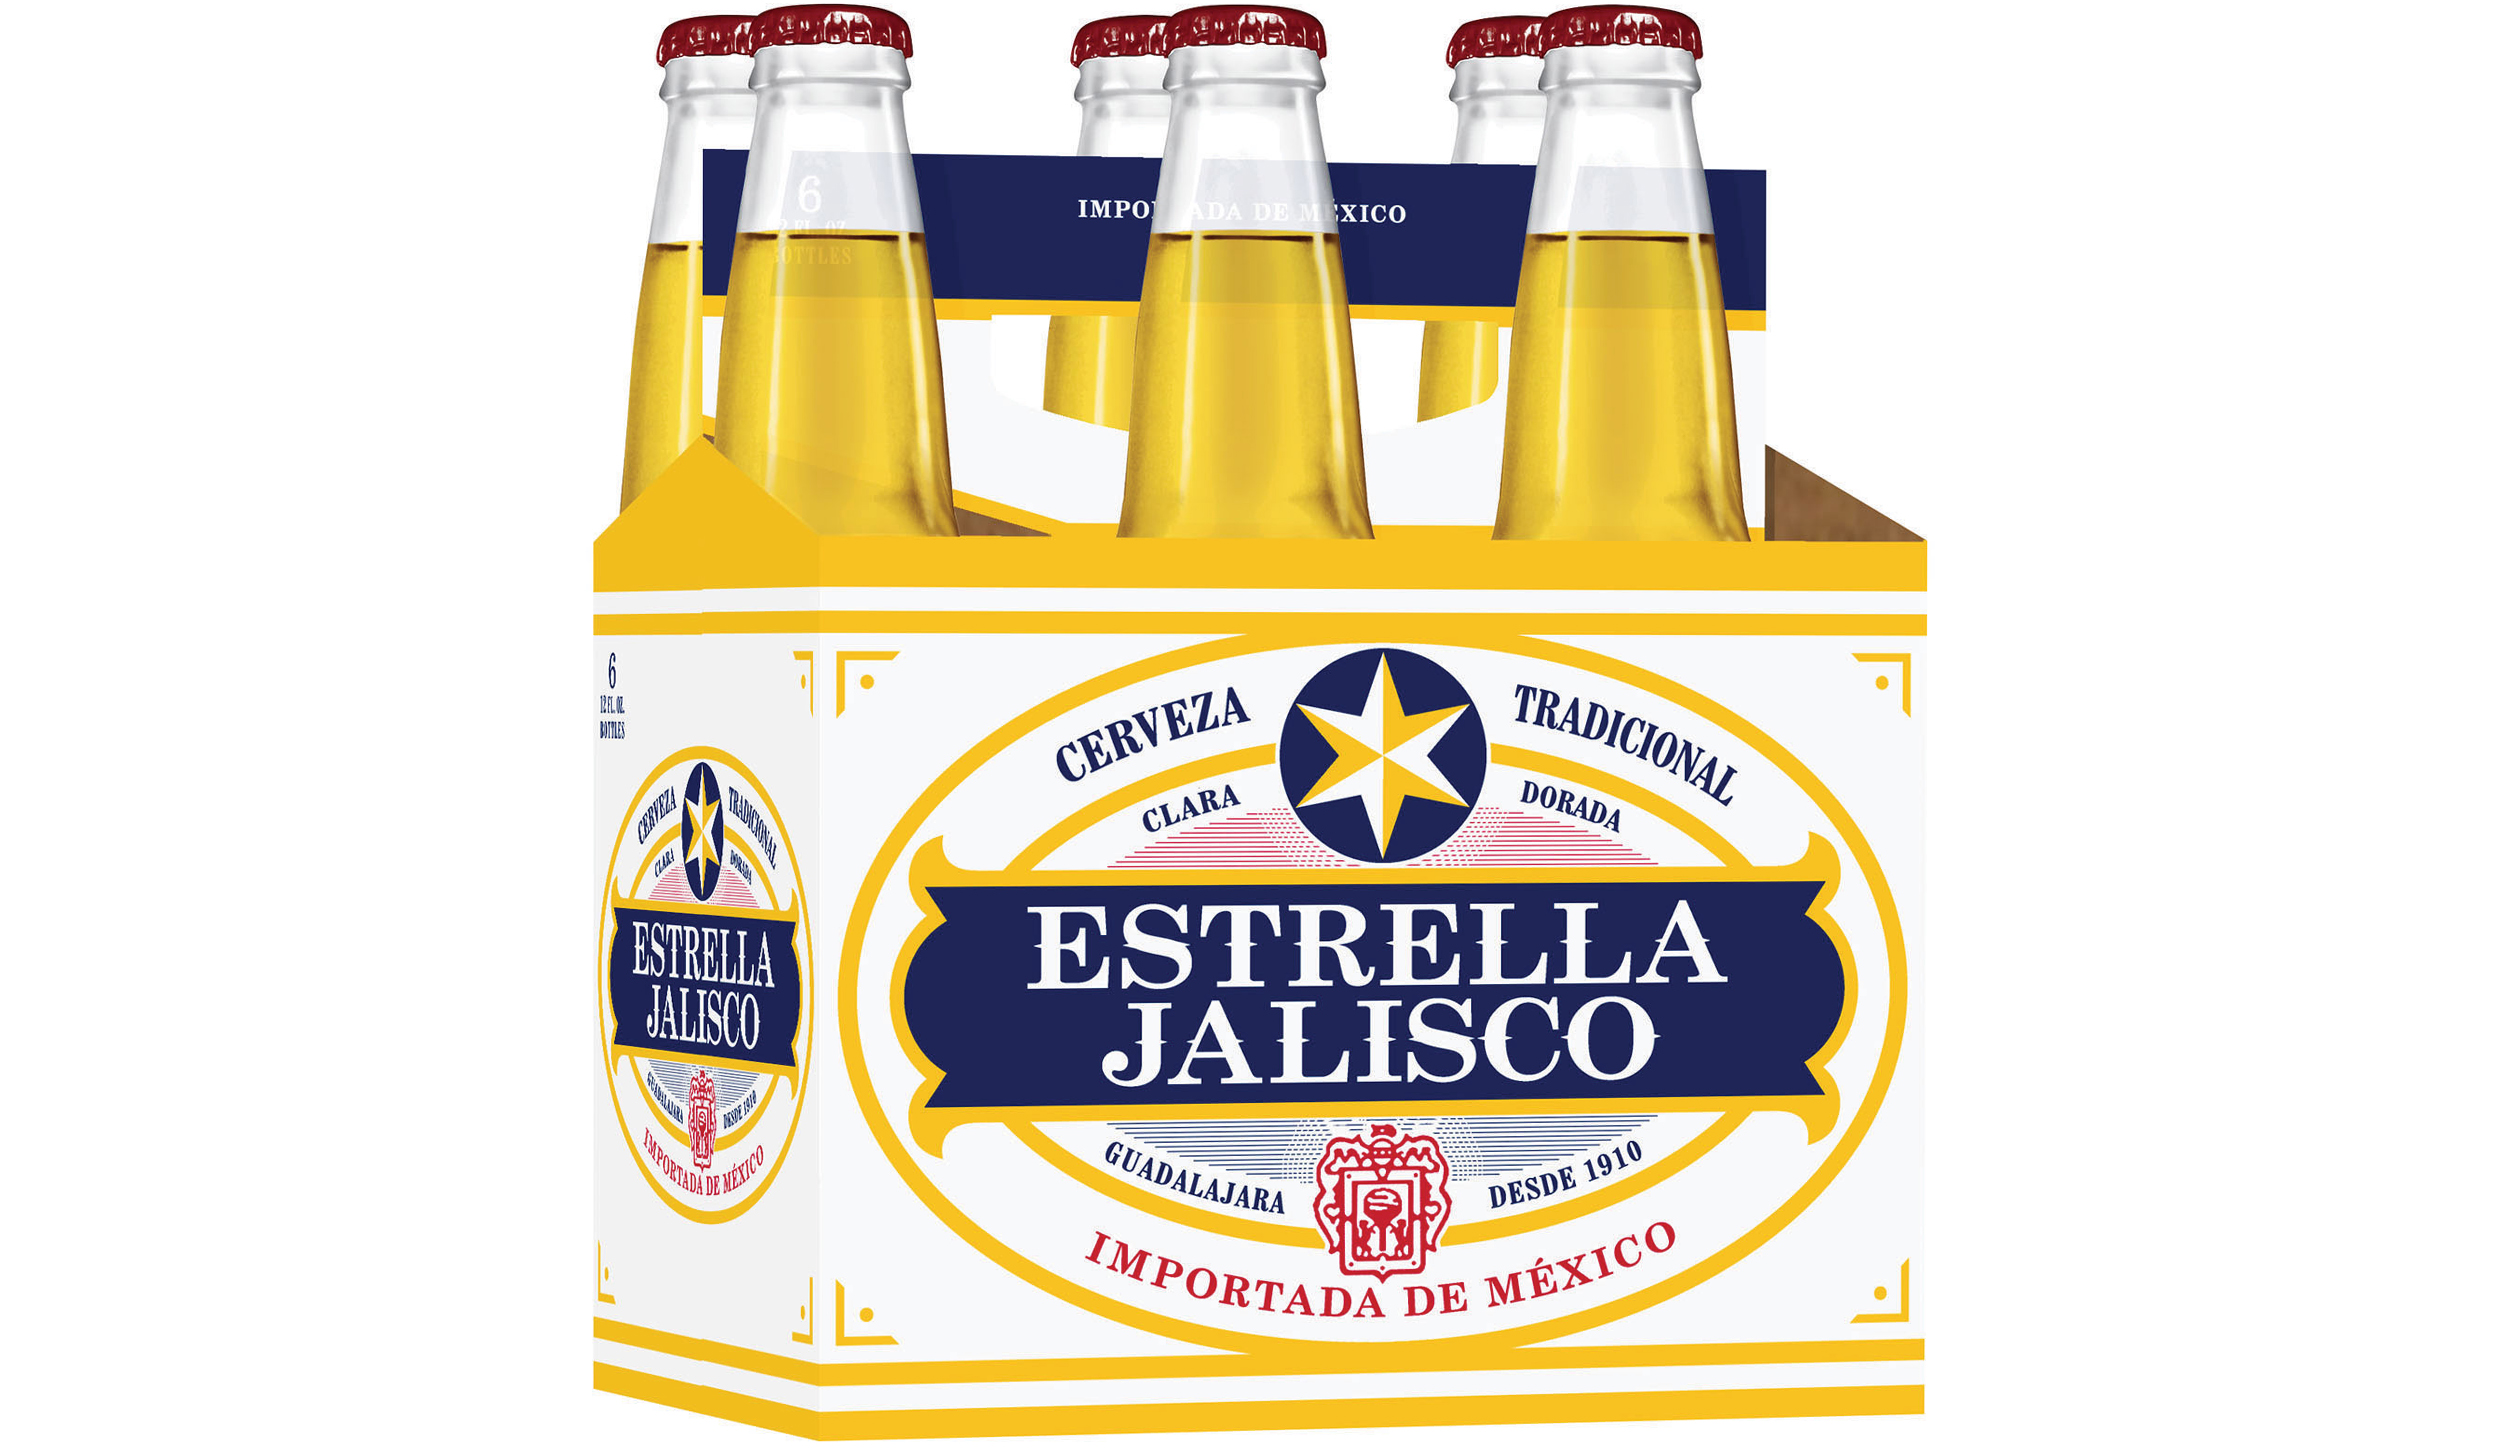 Mexico's Estrella Jalisco beer is debuting in 10 states this month.